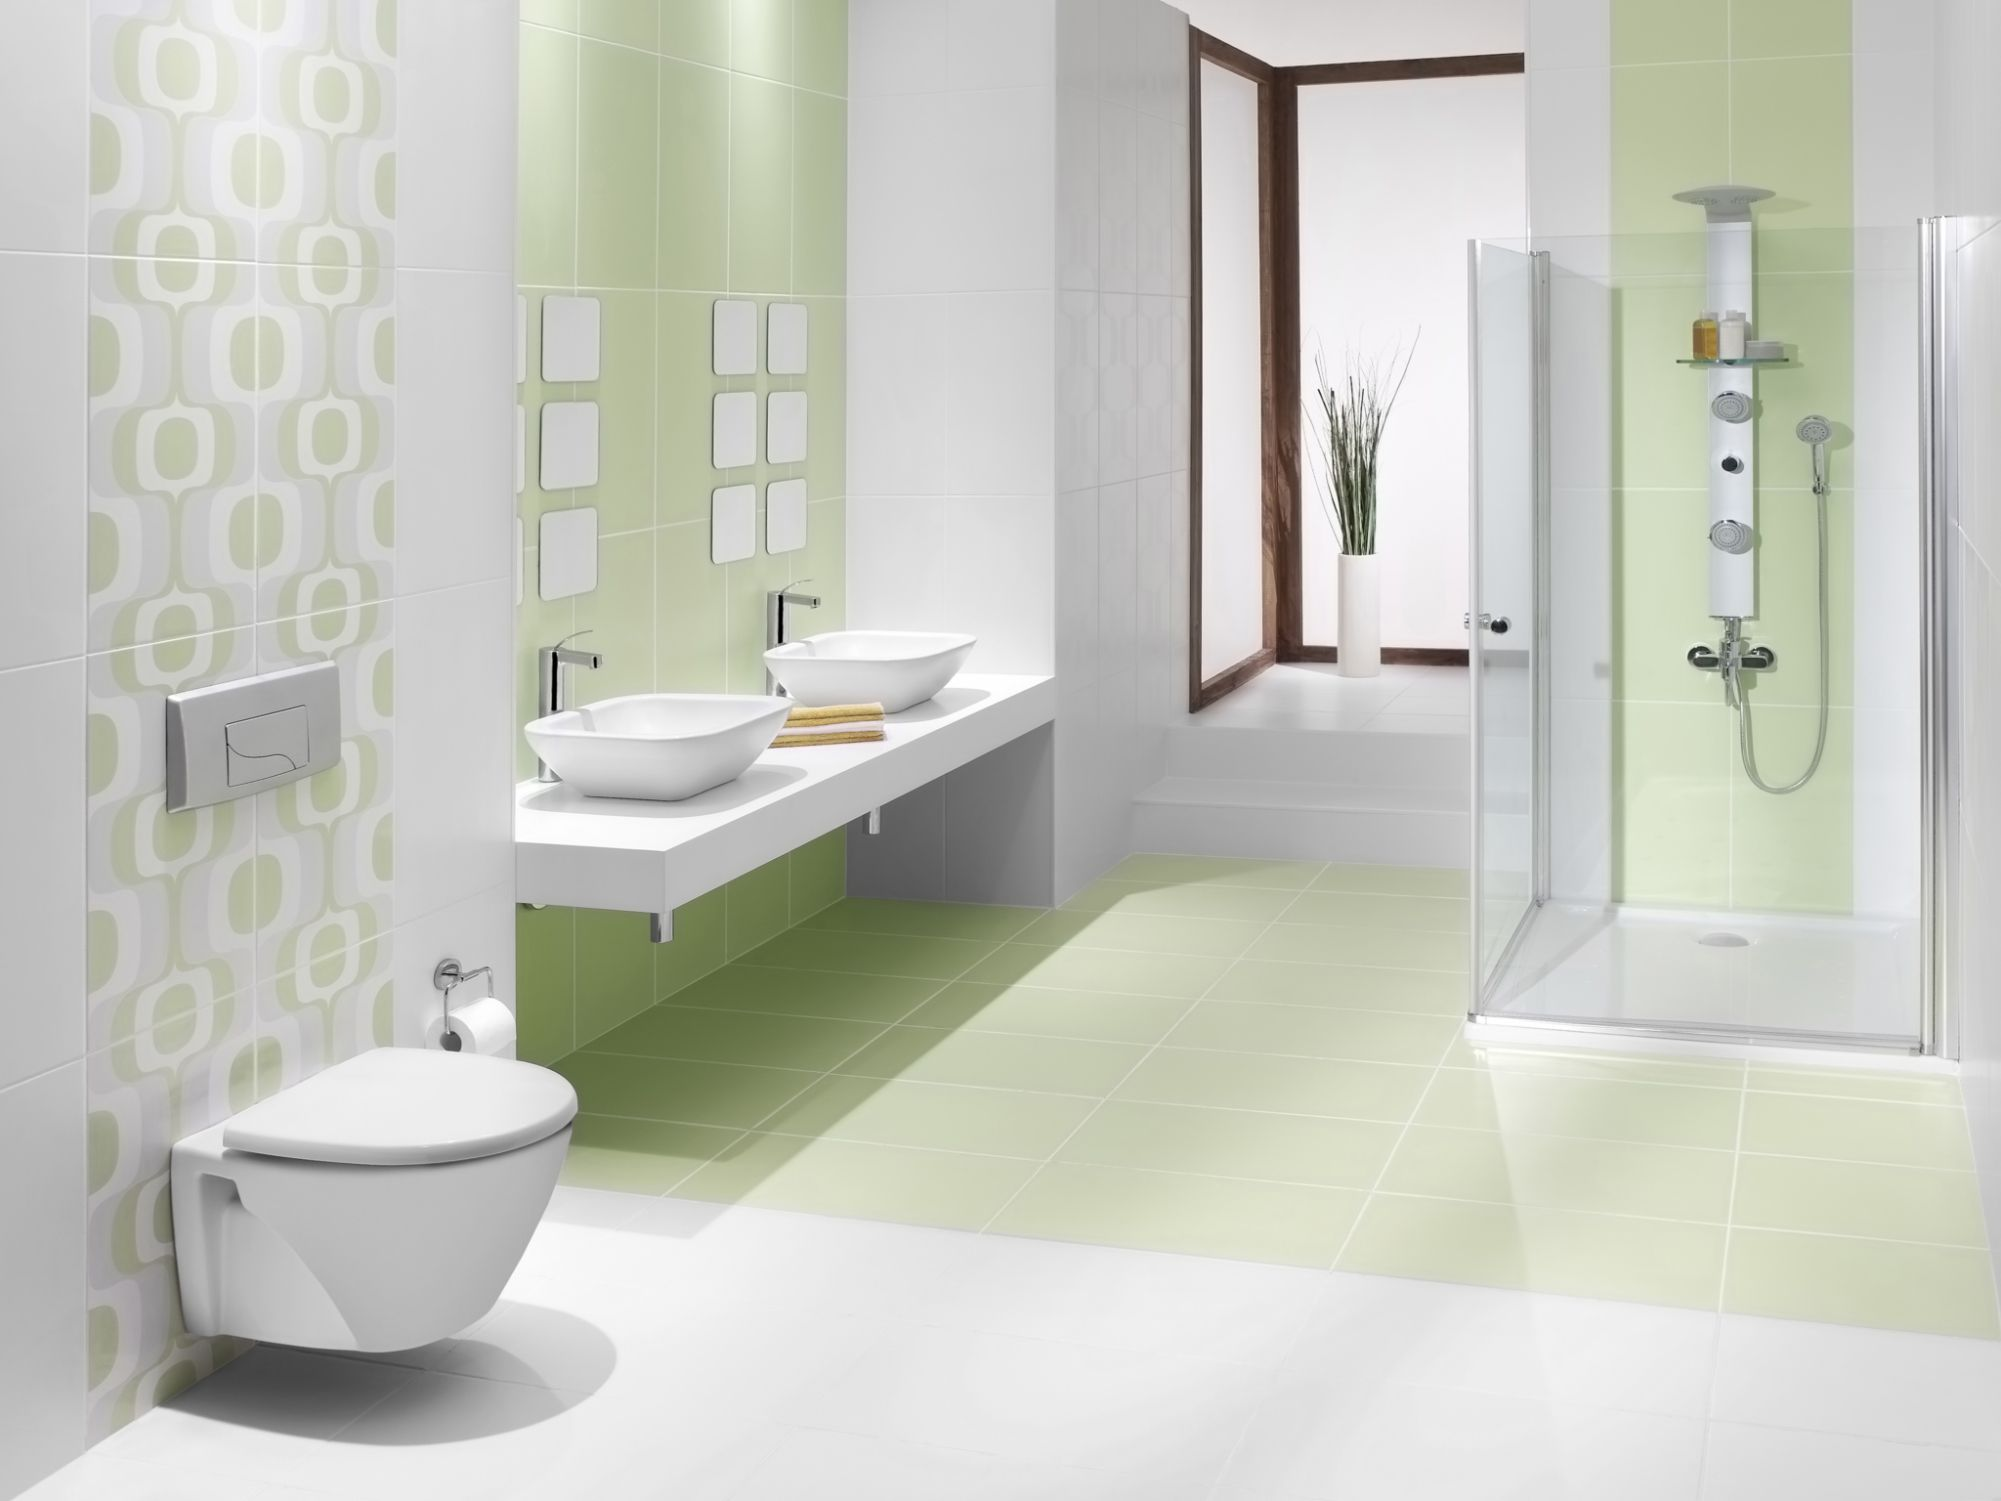 Astounding Bring Green Color To Your Bathroom With Tiles Download Free Architecture Designs Embacsunscenecom